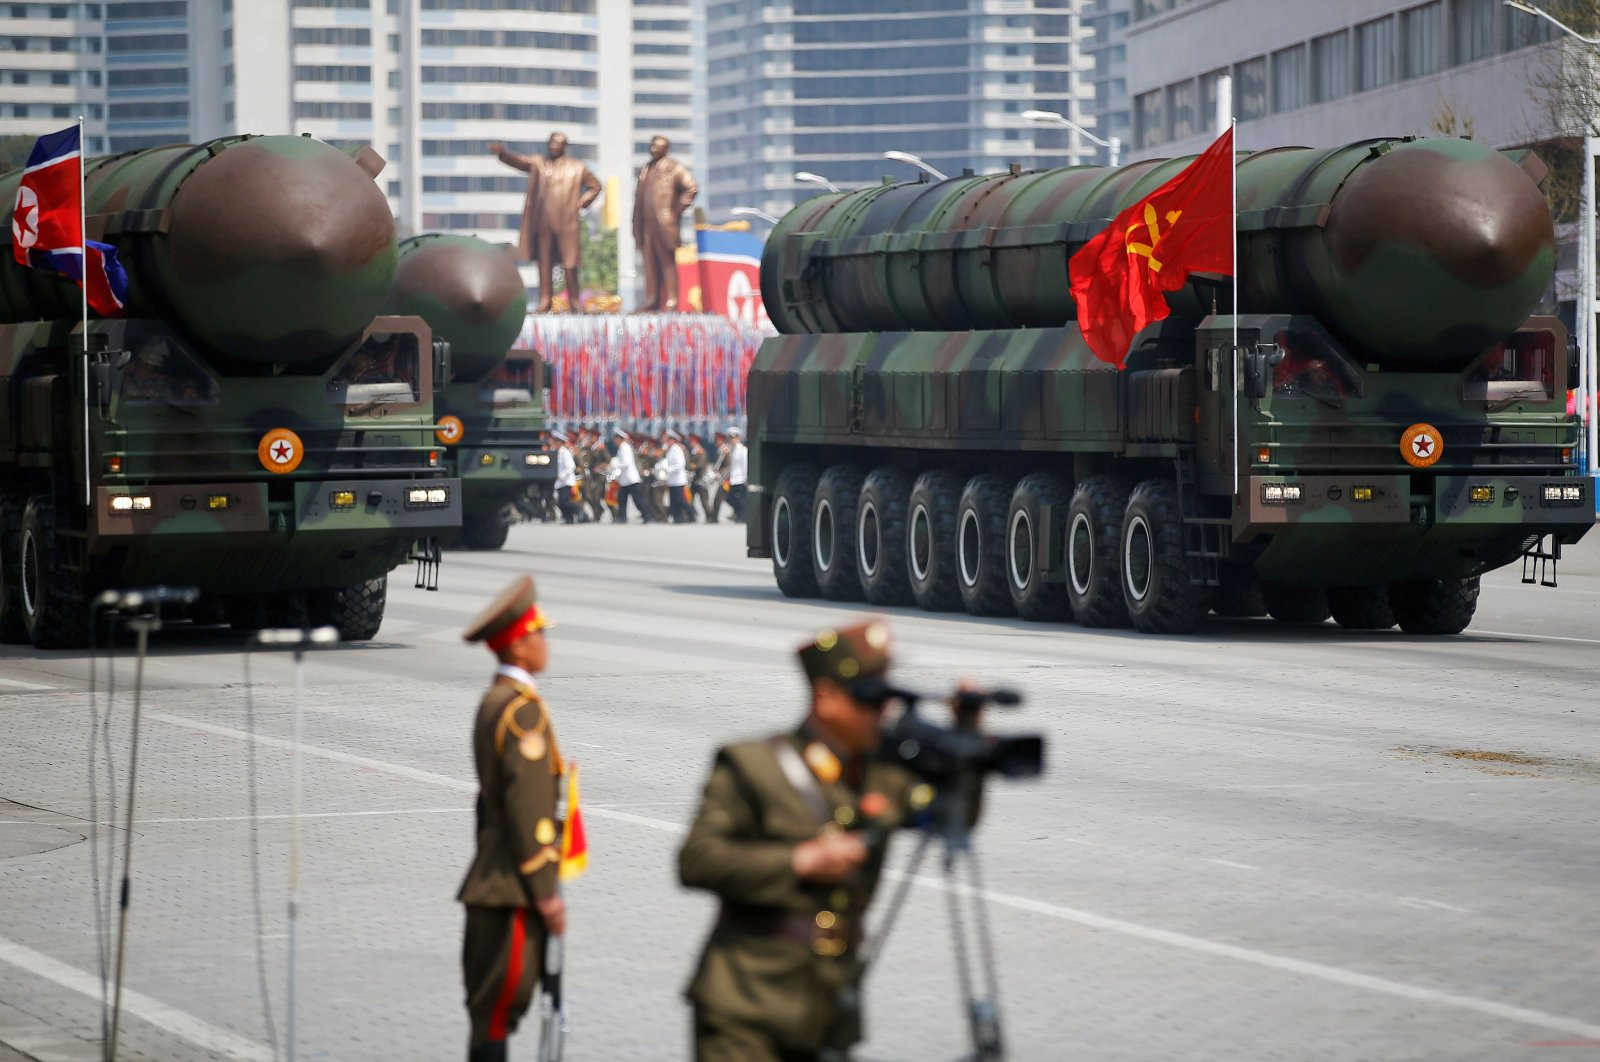 Intercontinental ballistic missiles (ICBM) are driven past a platform where North Korean leader Kim Jong Un and other high ranking stand during a military parade marking the 105th birth anniversary of the country's founding father Kim Il Sung, in Pyongyang, North Korea, April 15, 2017. (Reuters Photo)